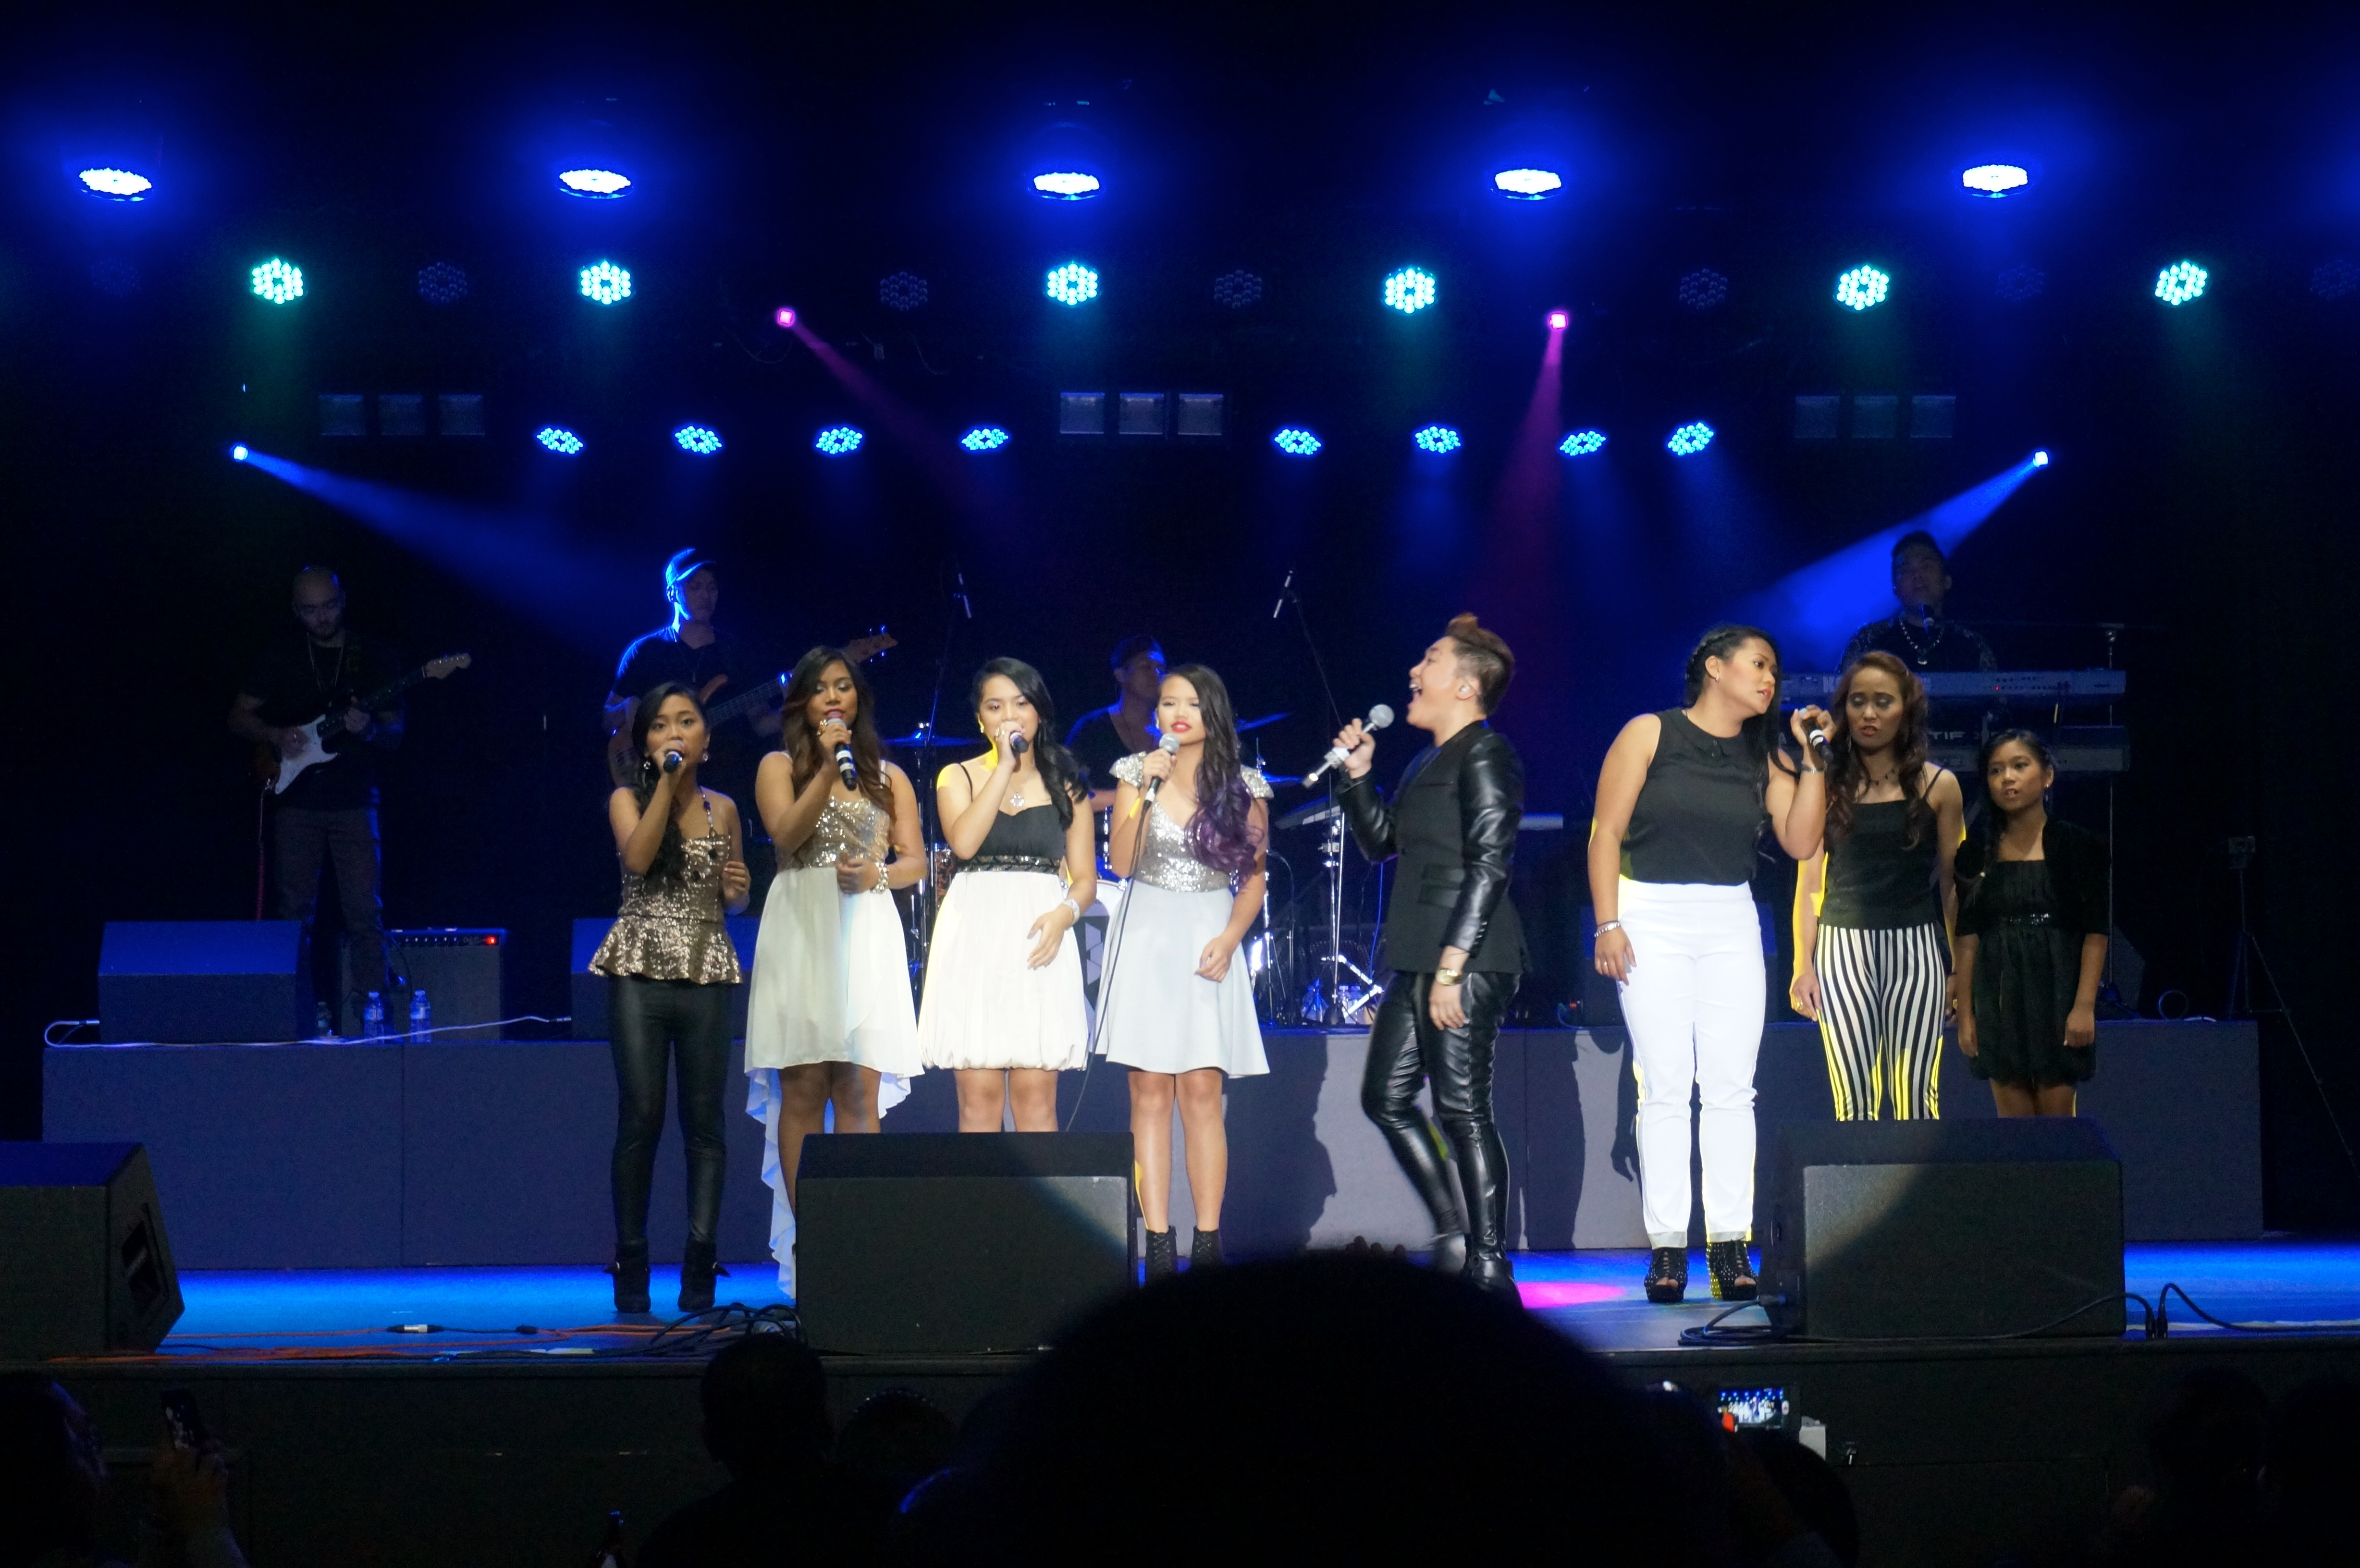 Charice singing you are not alone with front acts- Allyssa, Mikee-Anne, Chelsea, Leilani, Bernadette, Jinky and Dani.